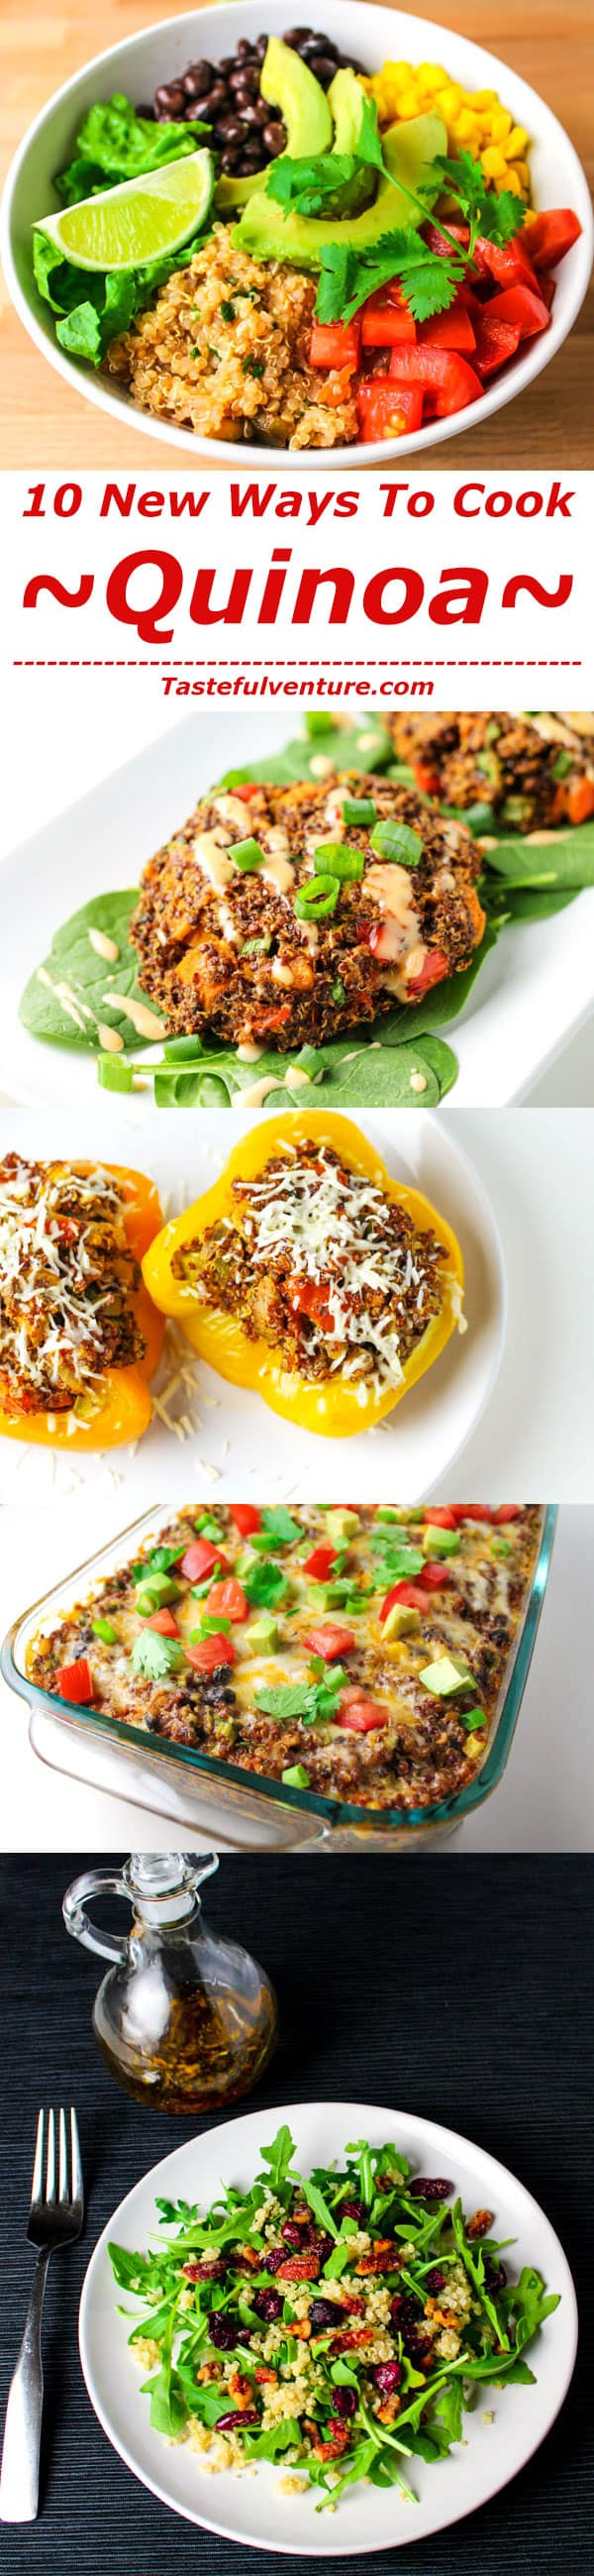 10 New Ways To Make Quinoa! These recipes are all healthy, gluten free, and delicious! | Tastefulventure.com